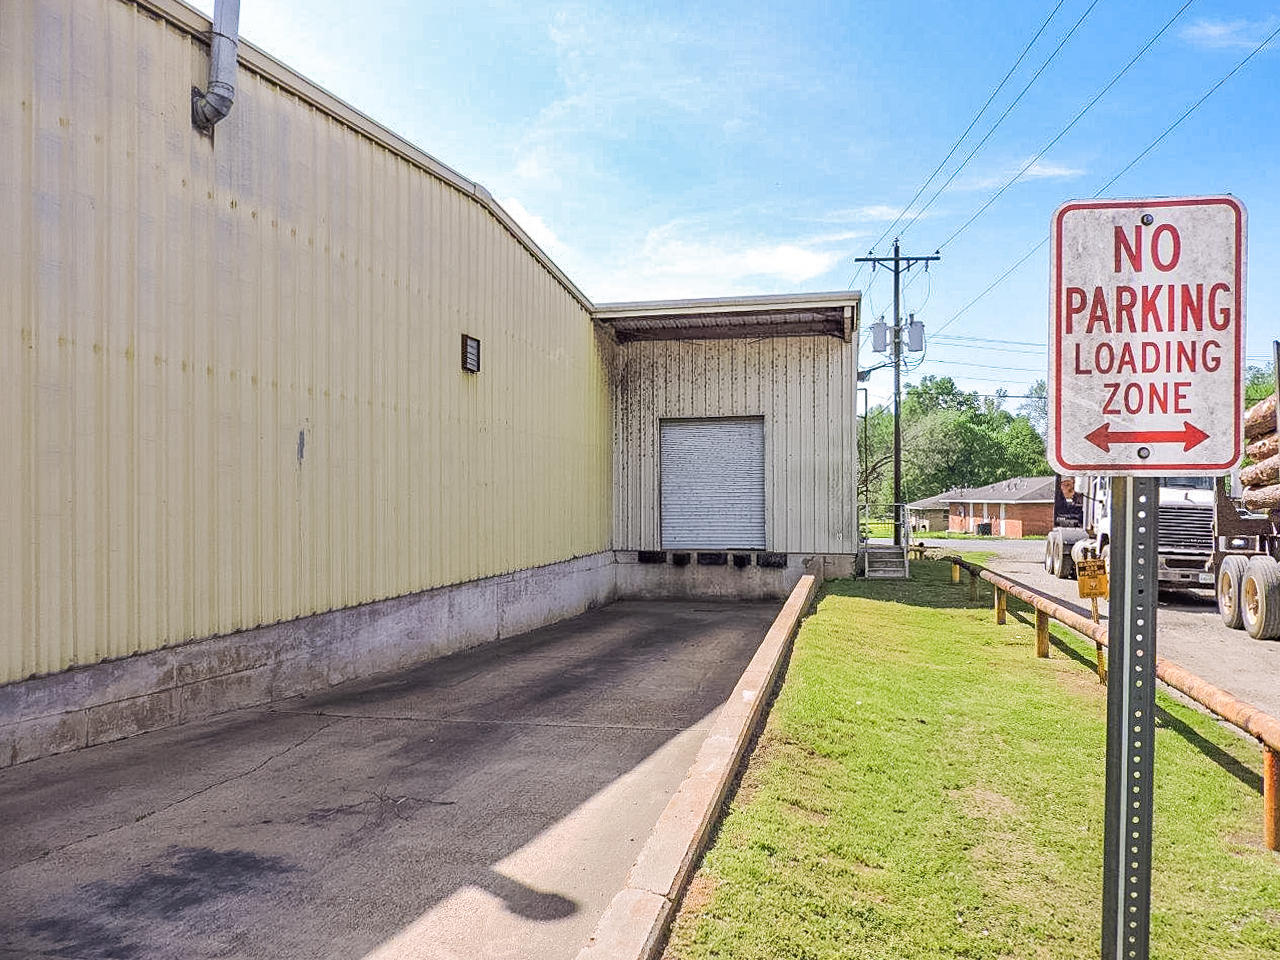 Zwolle commercial property for sale, 2540 Obrie St, Zwolle LA - $350,000